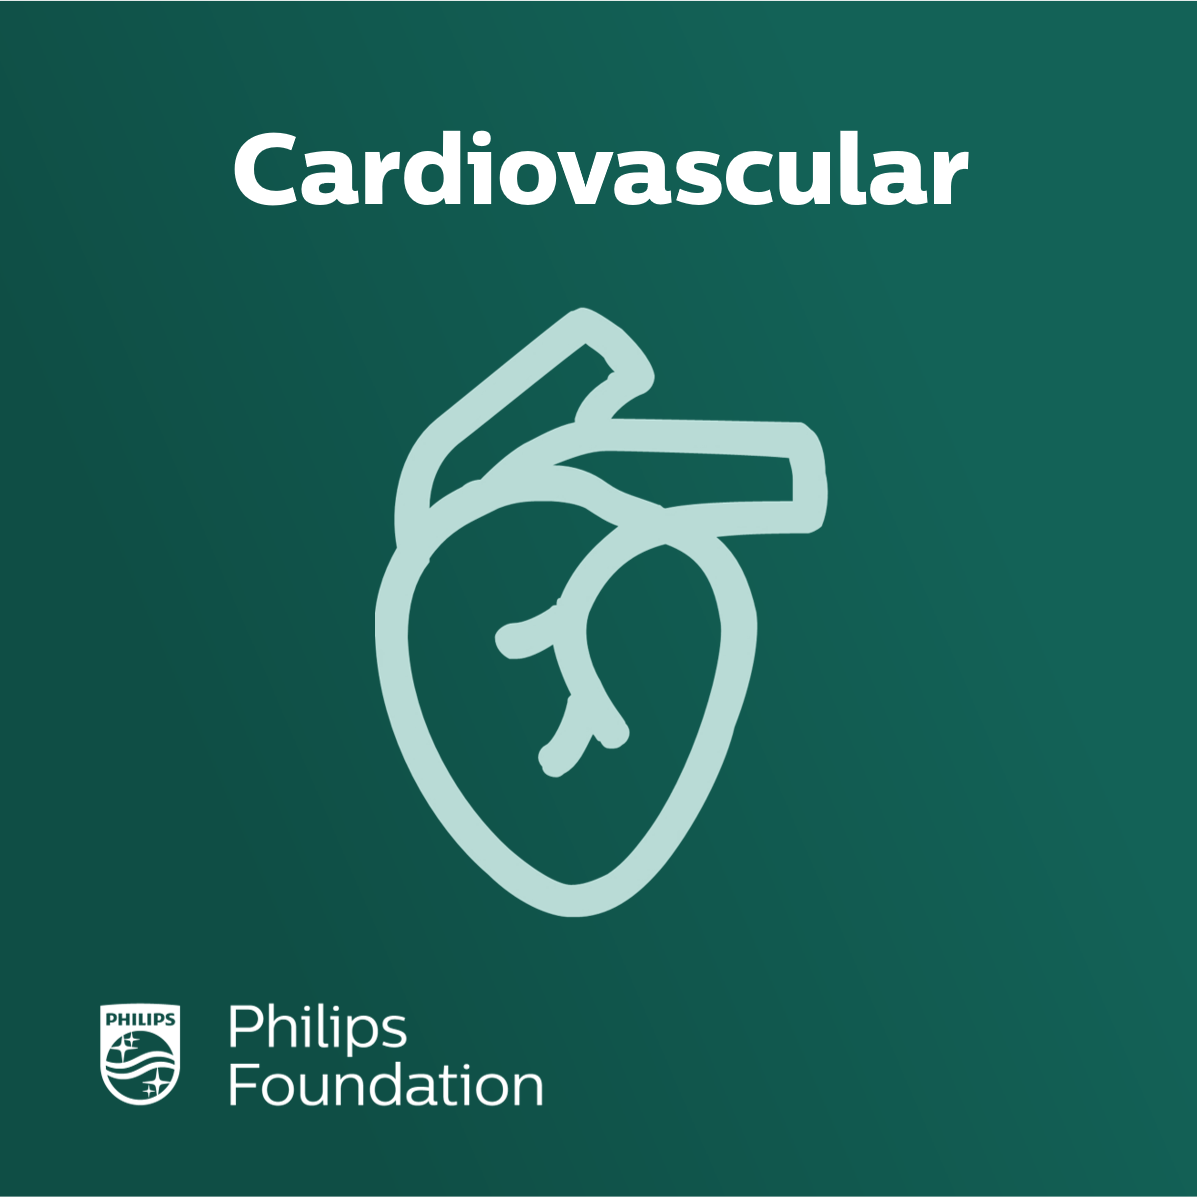 philips_foundation_cardiovascular_icon